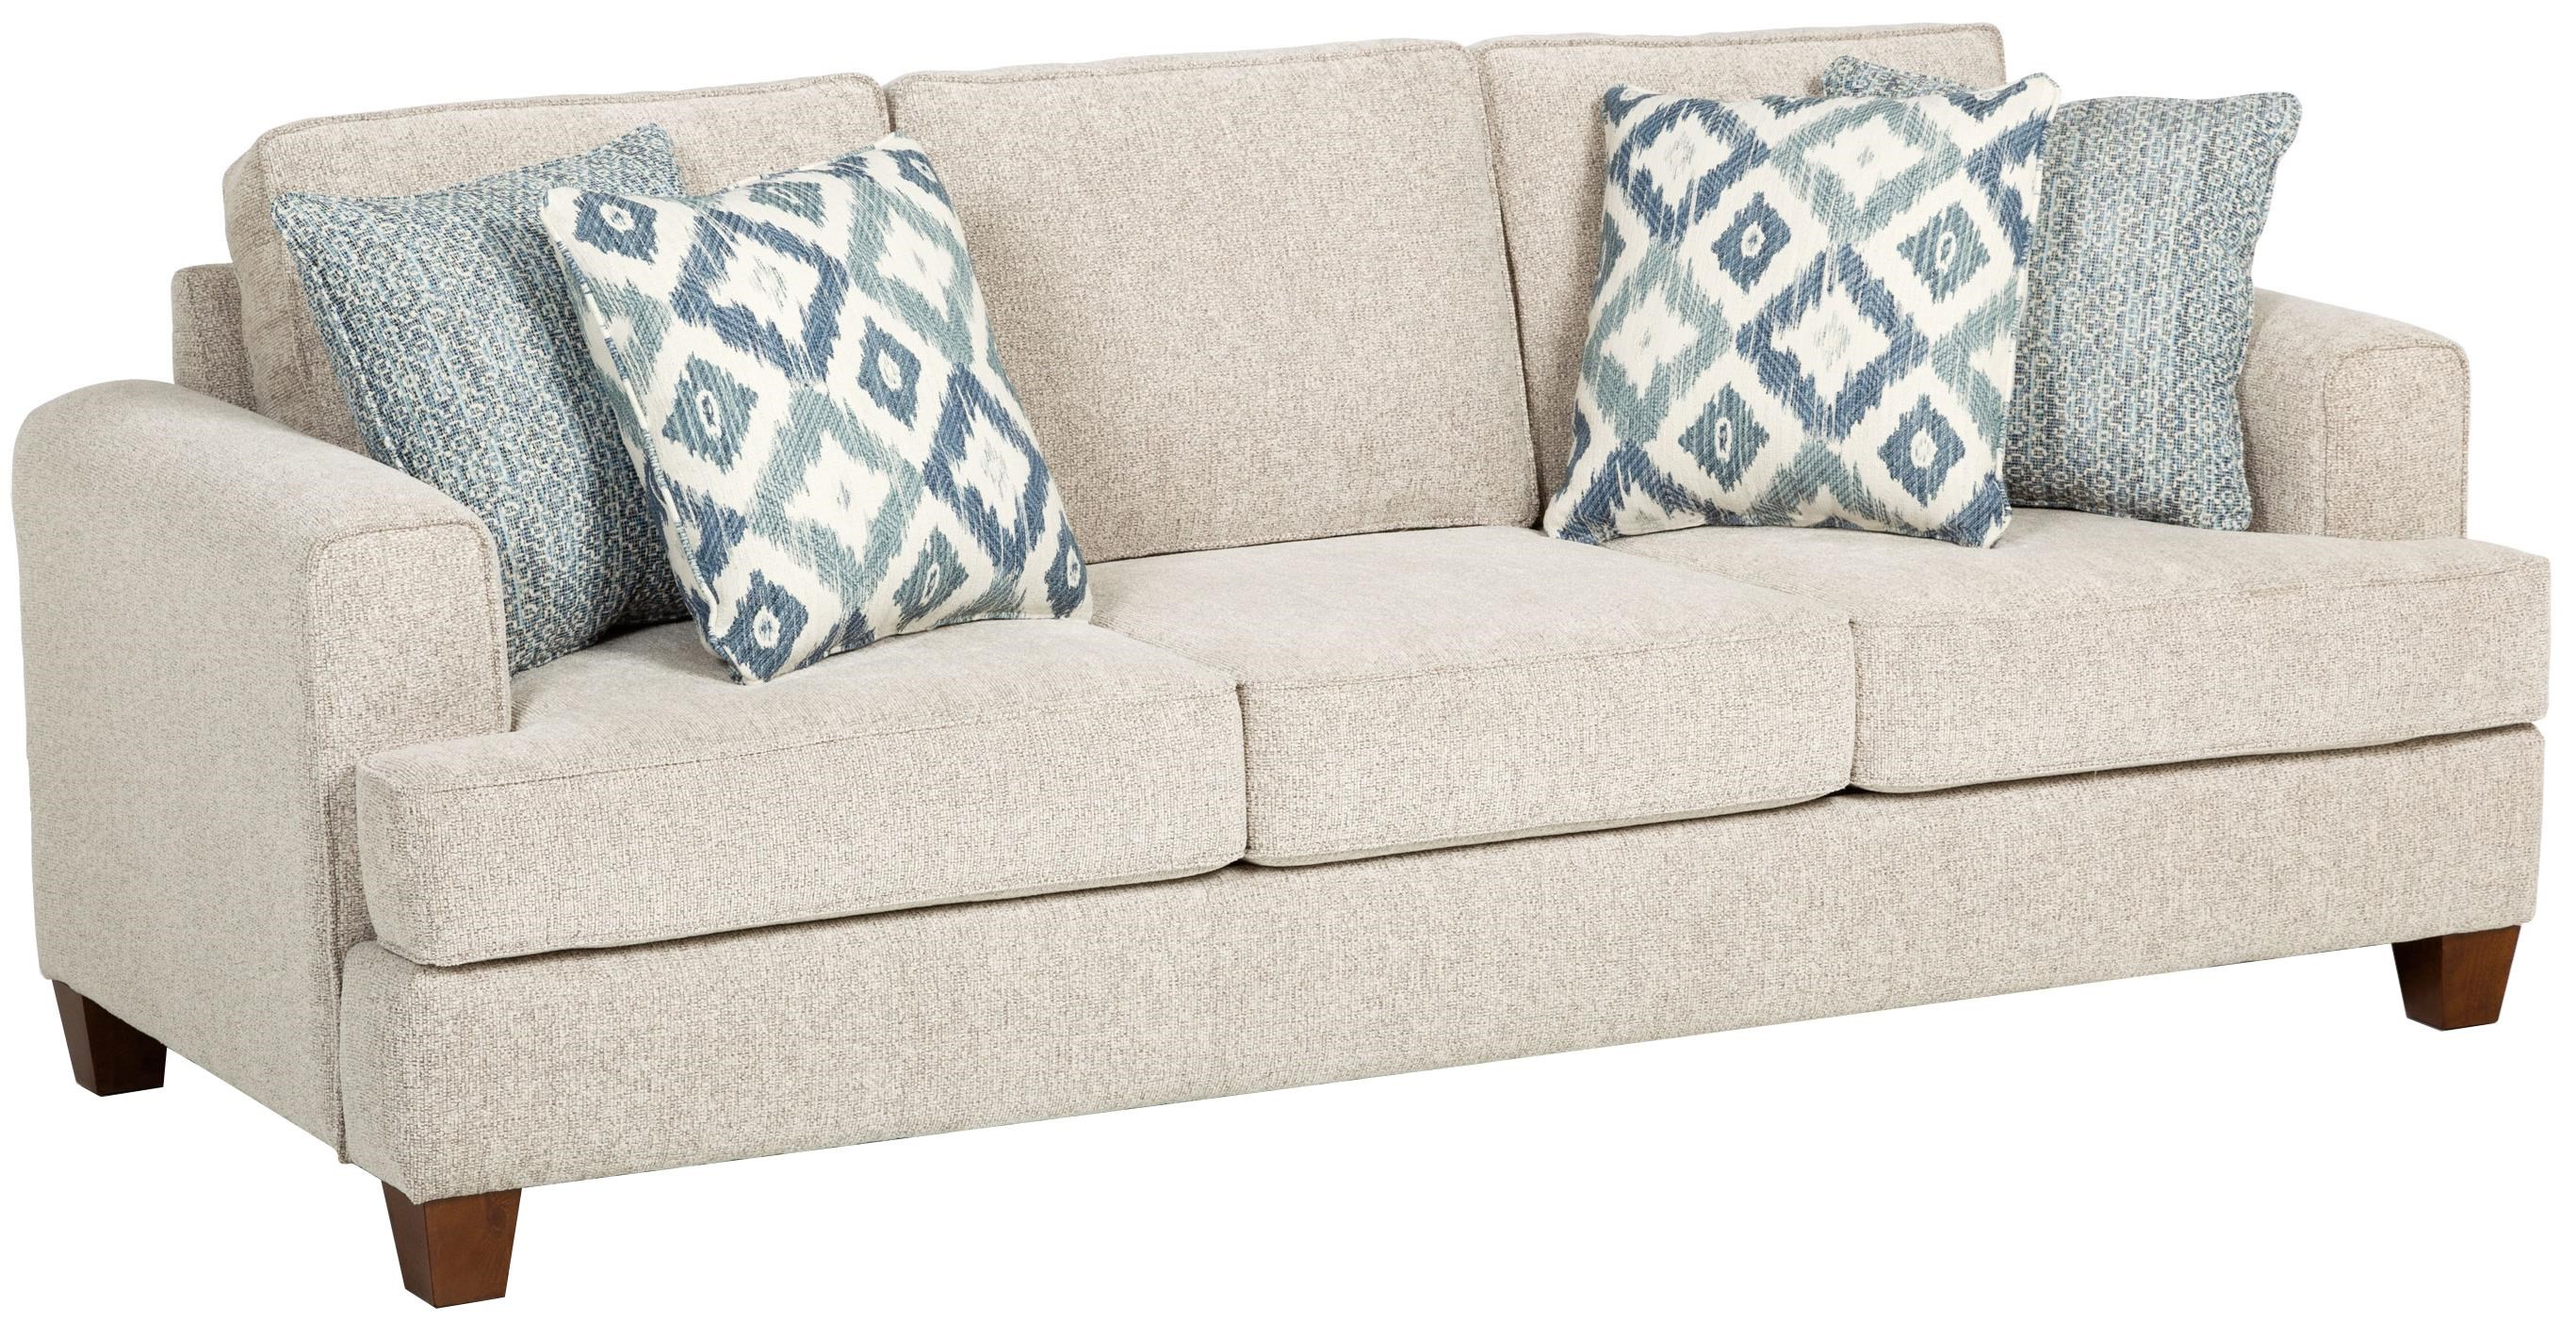 519 Sofa by Sunset Home at Sadler's Home Furnishings